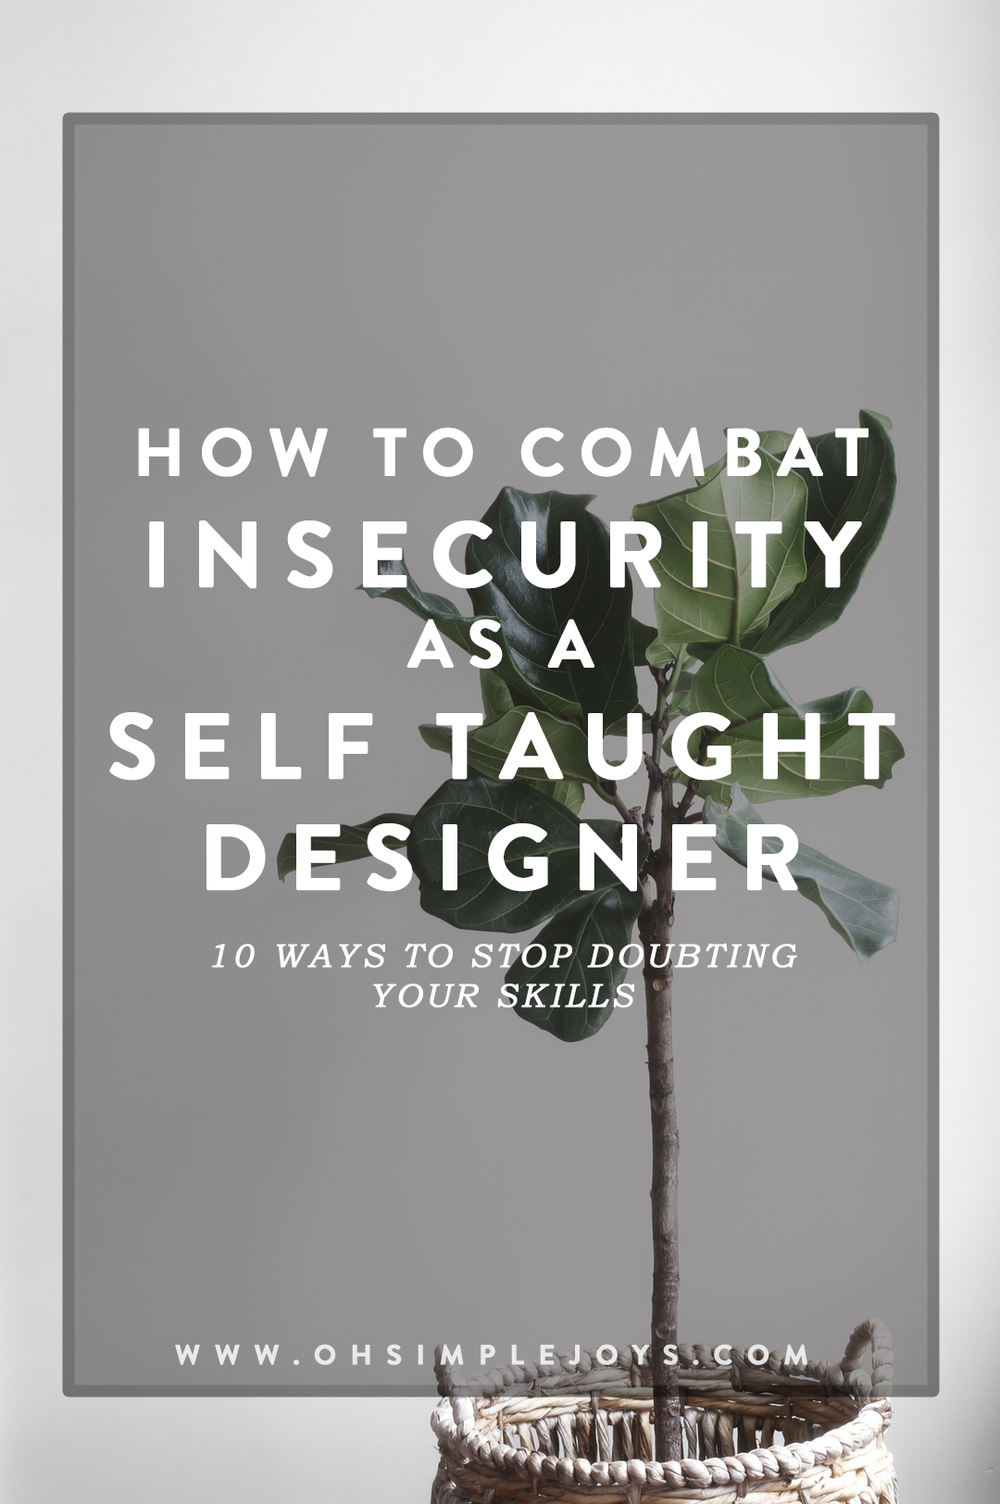 Being a self taught anything can be hard sometimes. Fighting feelings of insecurity and impostor syndrome are not fun. Here are 10 ways to fight those feelings and win.